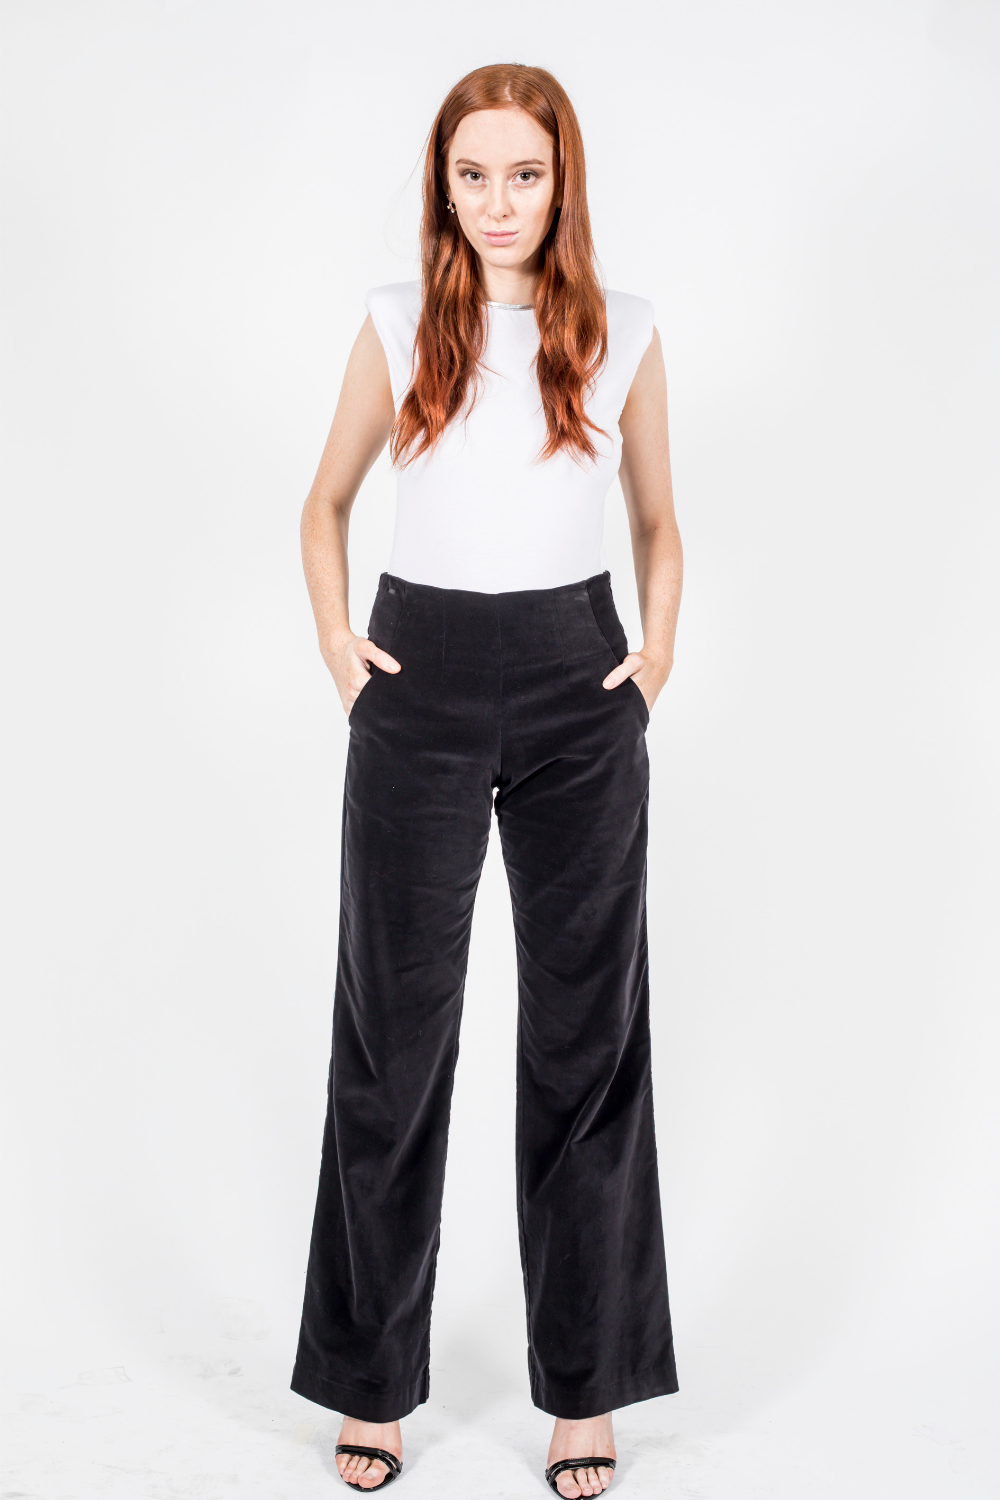 Wide Leg Pants, Black Cotton Velvet